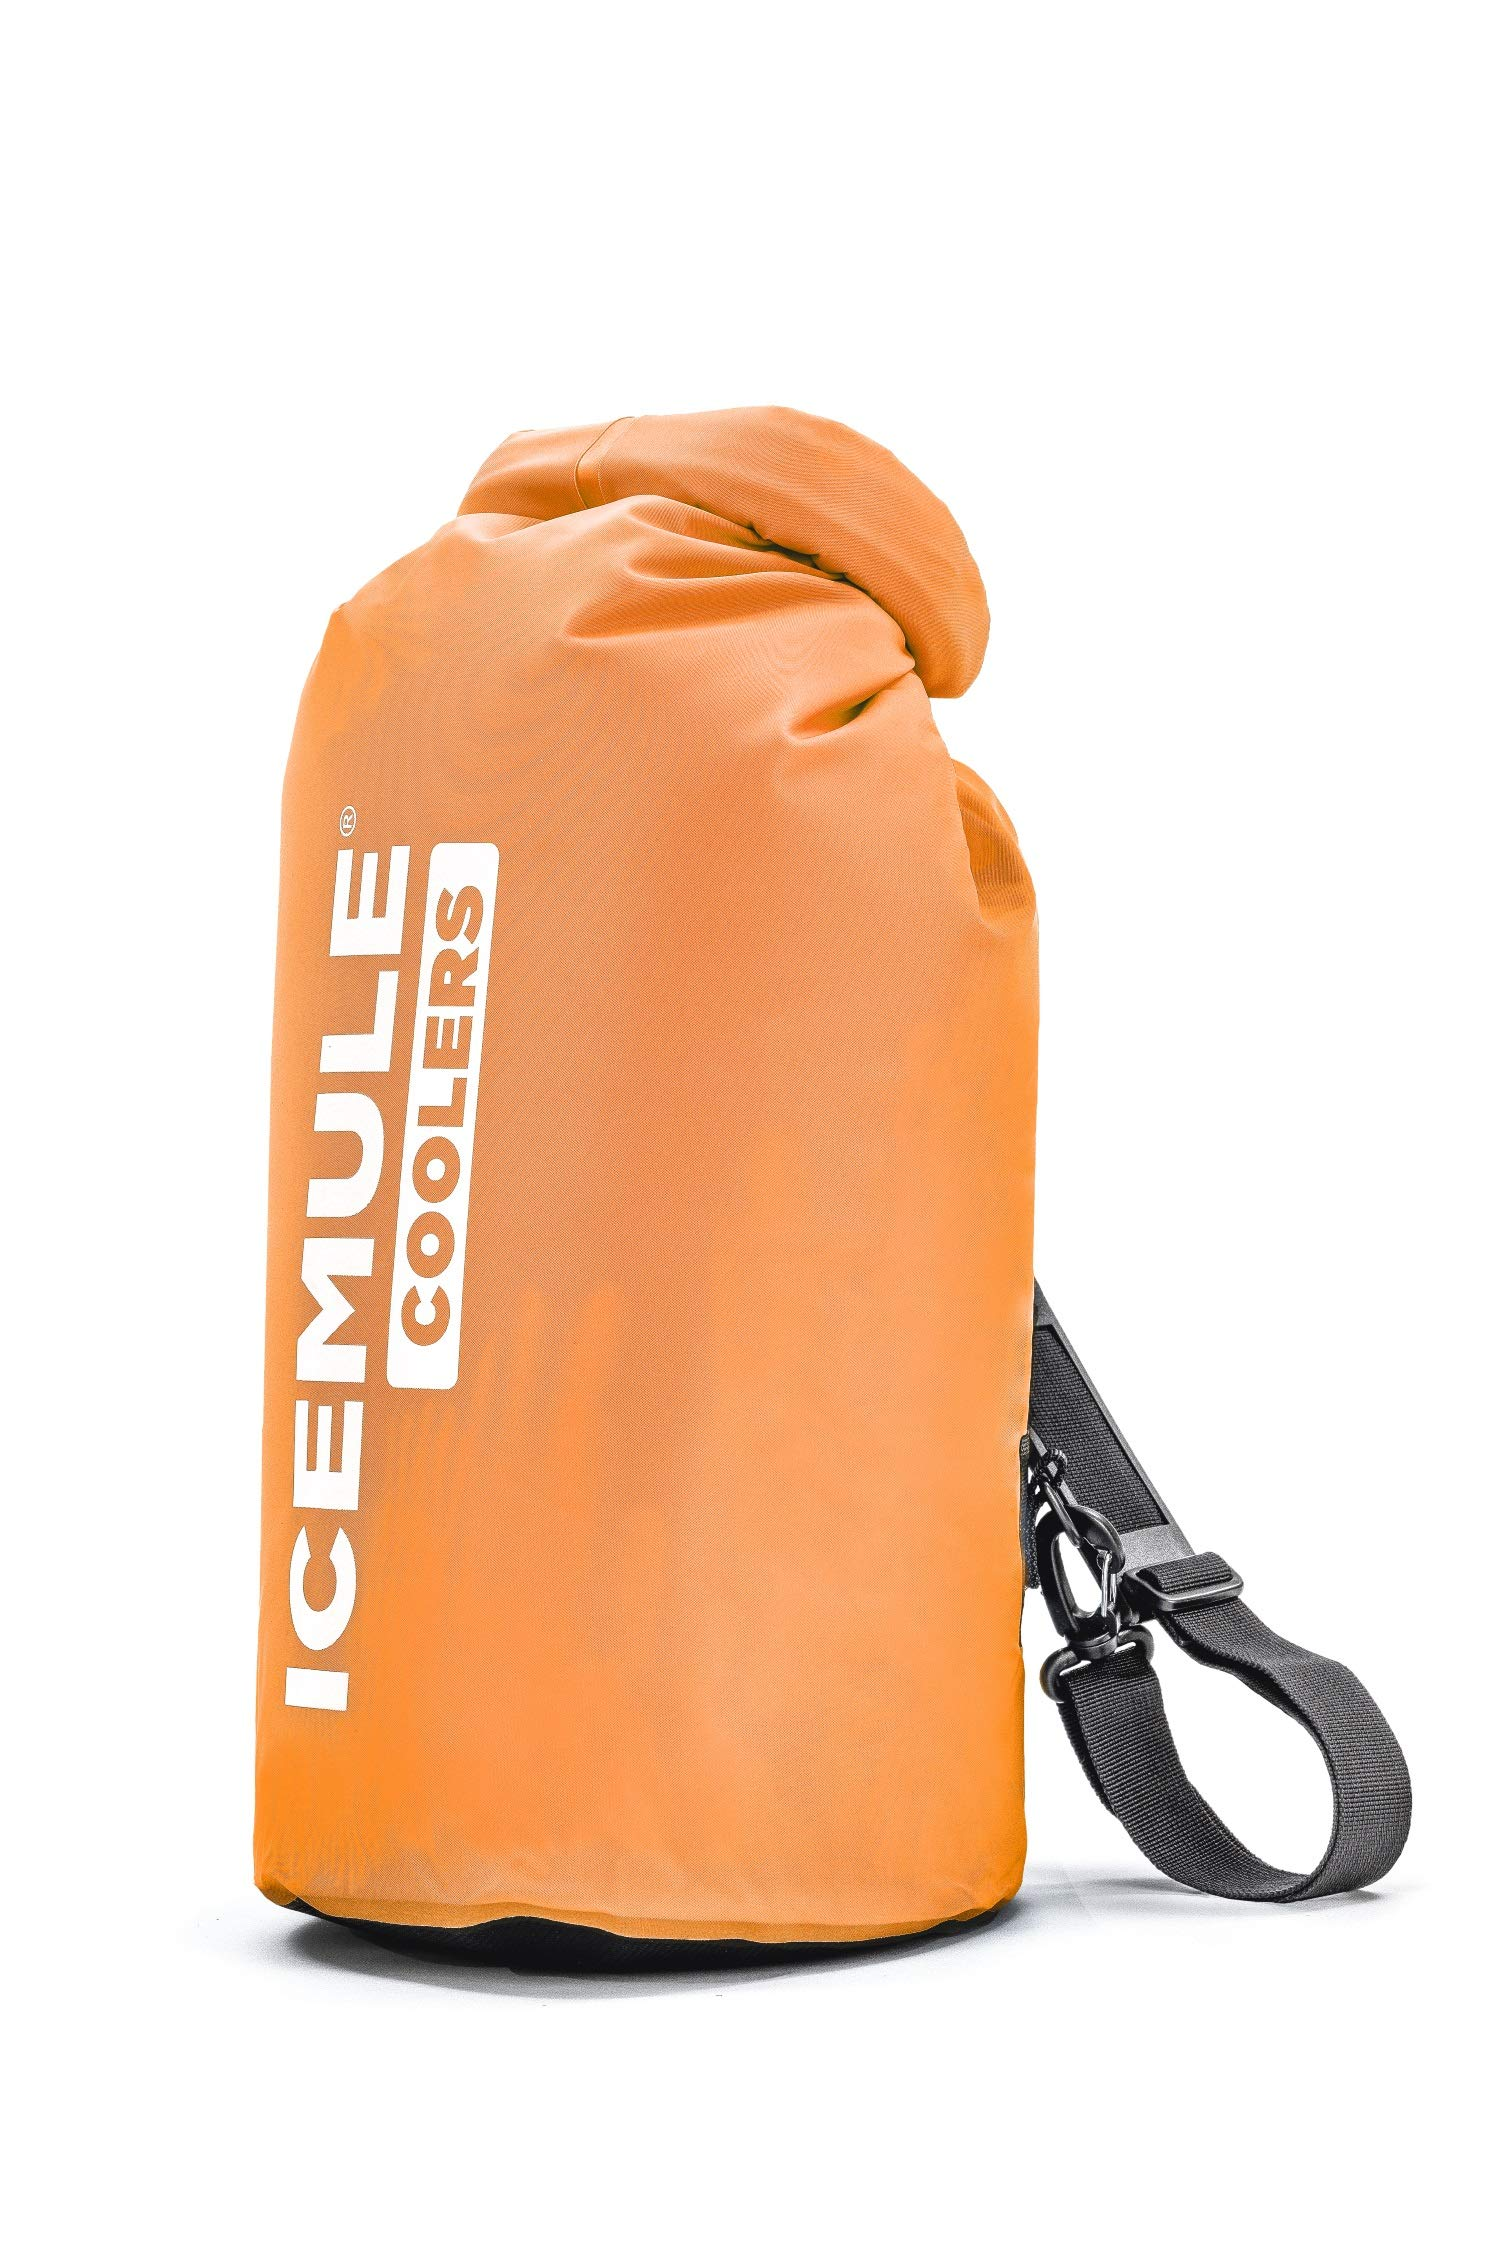 icemule cooler Sticker Camping